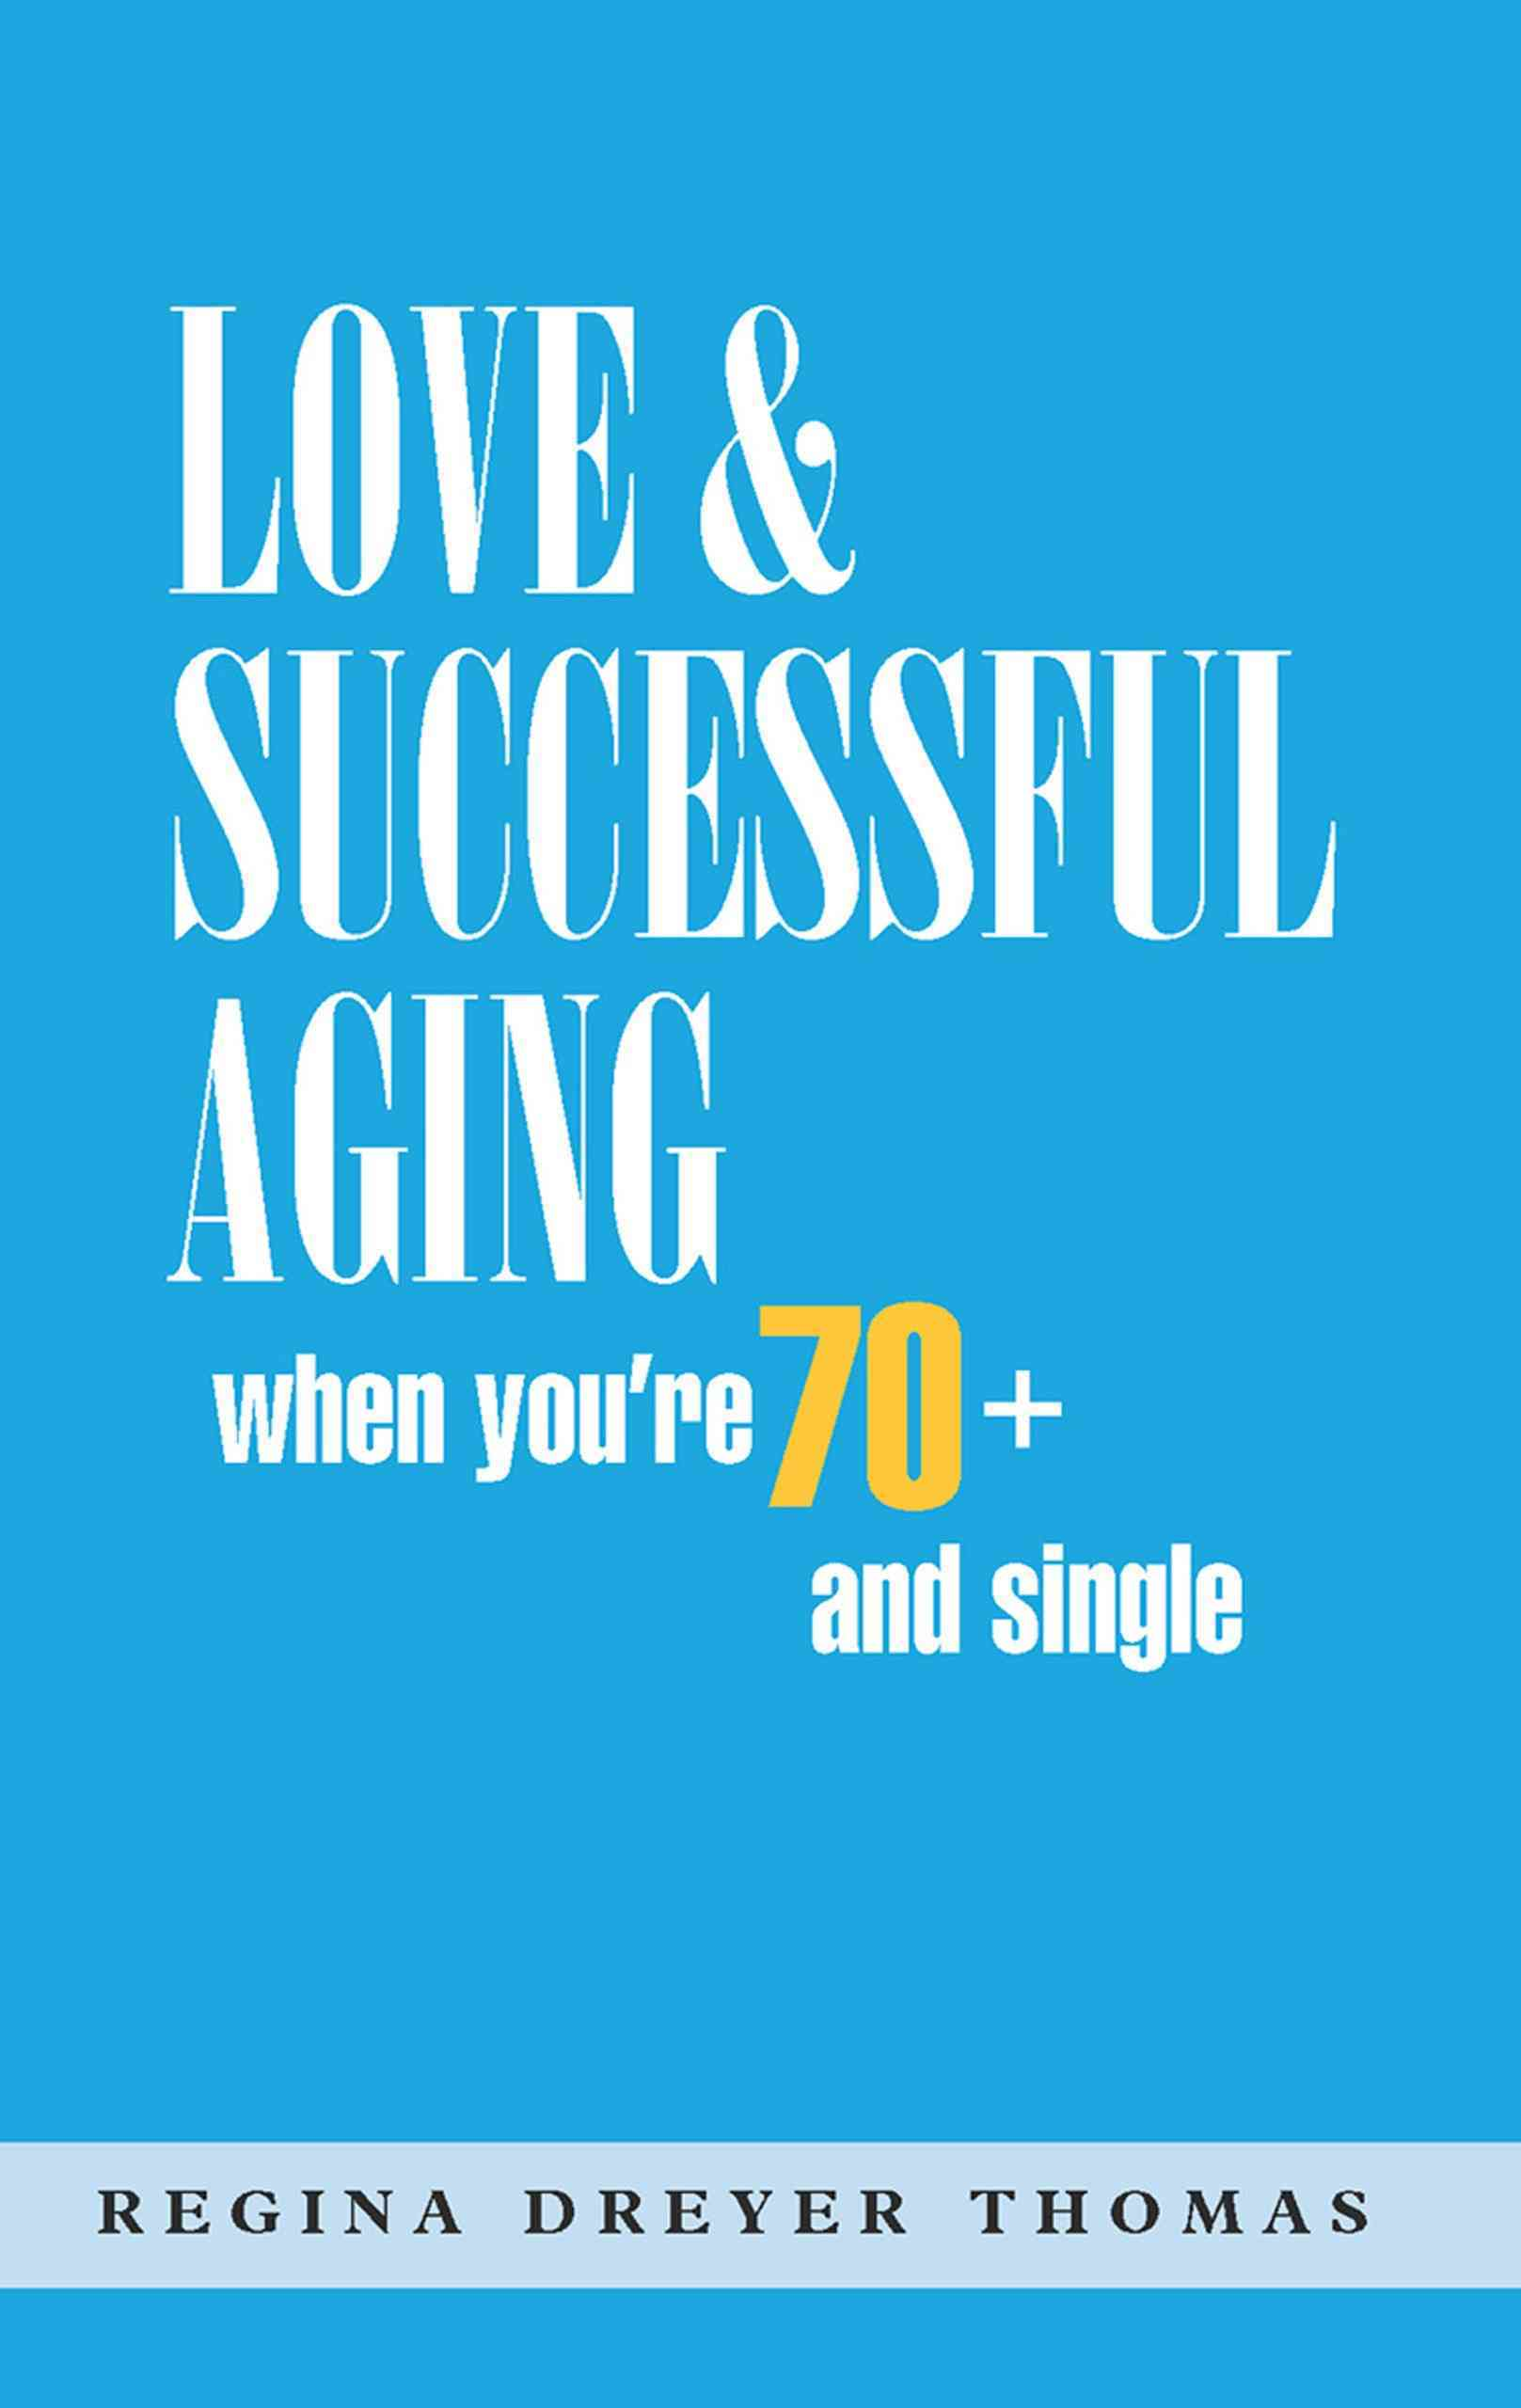 Love & Successful Aging When You're 70+ and Single By Thomas, Regina Dreyer